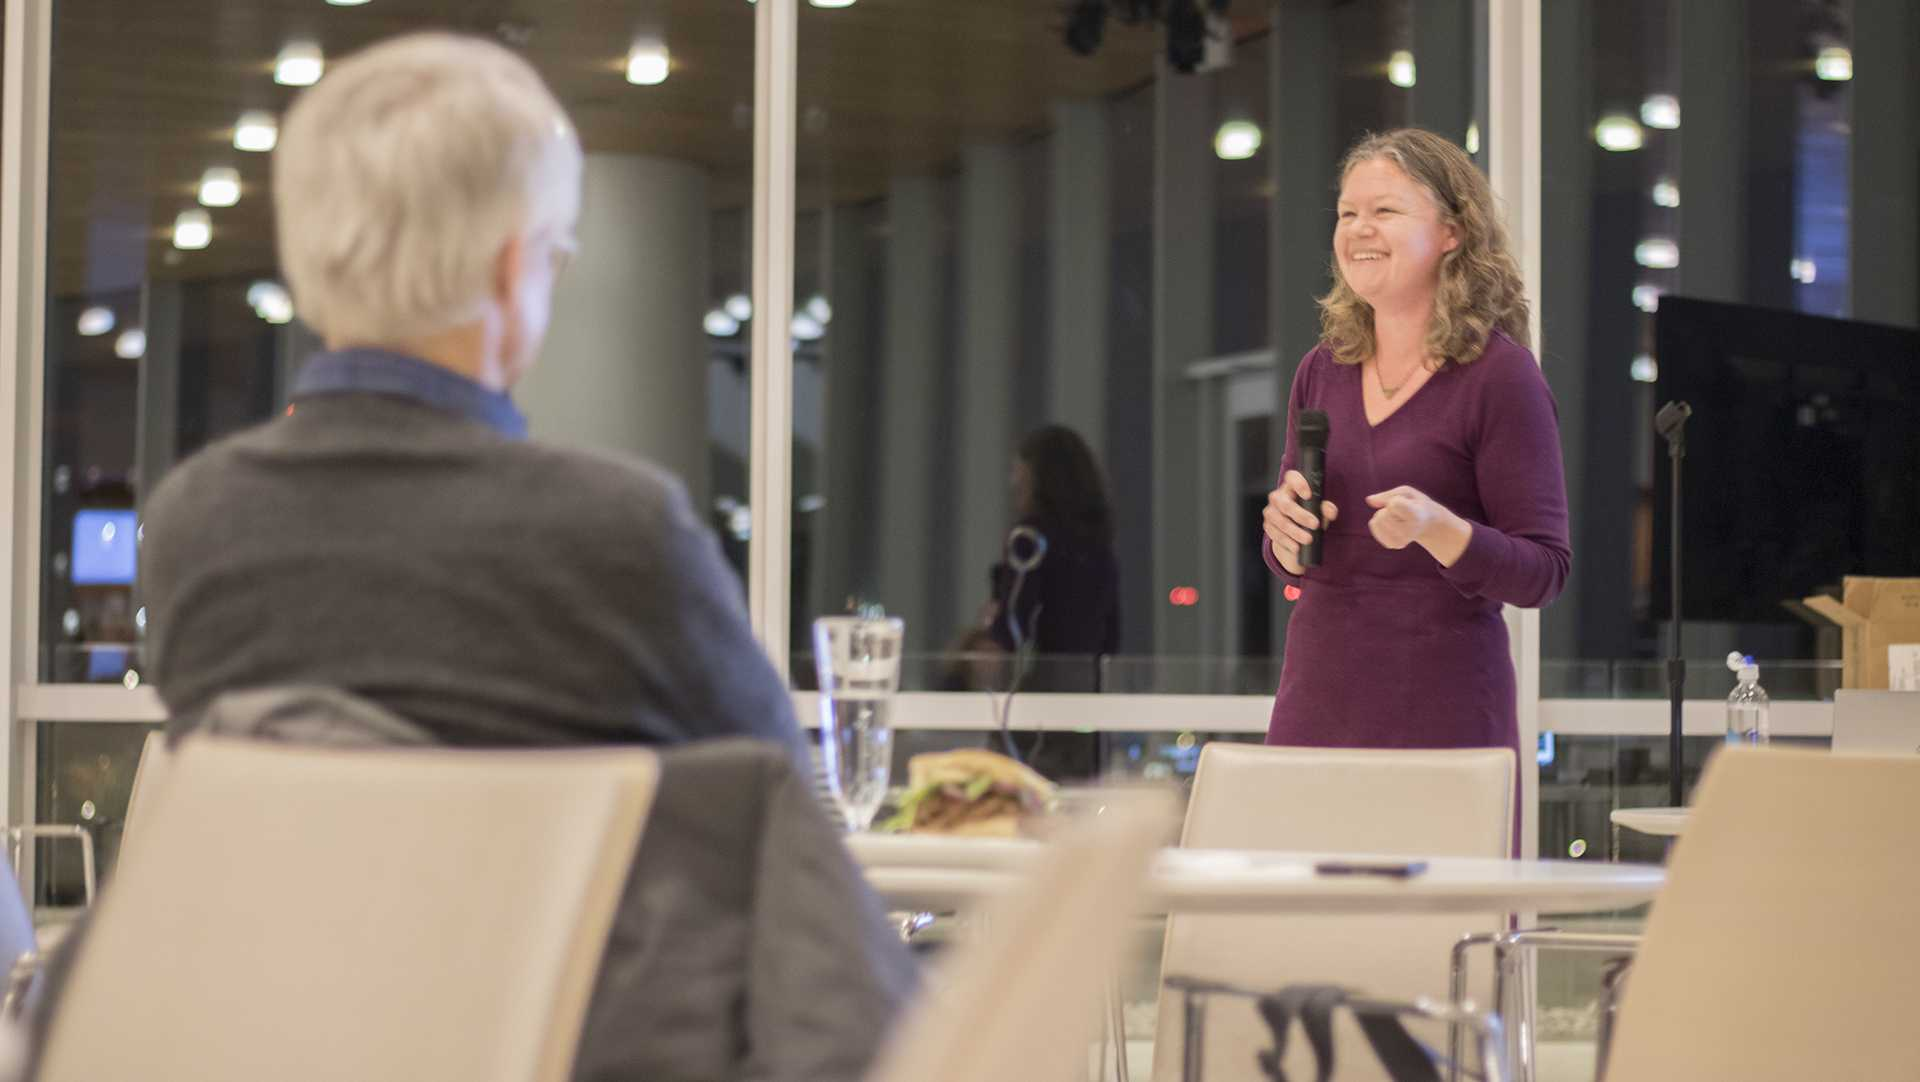 Dr. Brandi Jannsen smiles during a presentation on small-scale farming in Iowa at Hancher Auditorium on Thursday, Nov. 9, 2017. The talk covered the way local and global food systems overlap. (Shivansh Ahuja/The Daily Iowan)